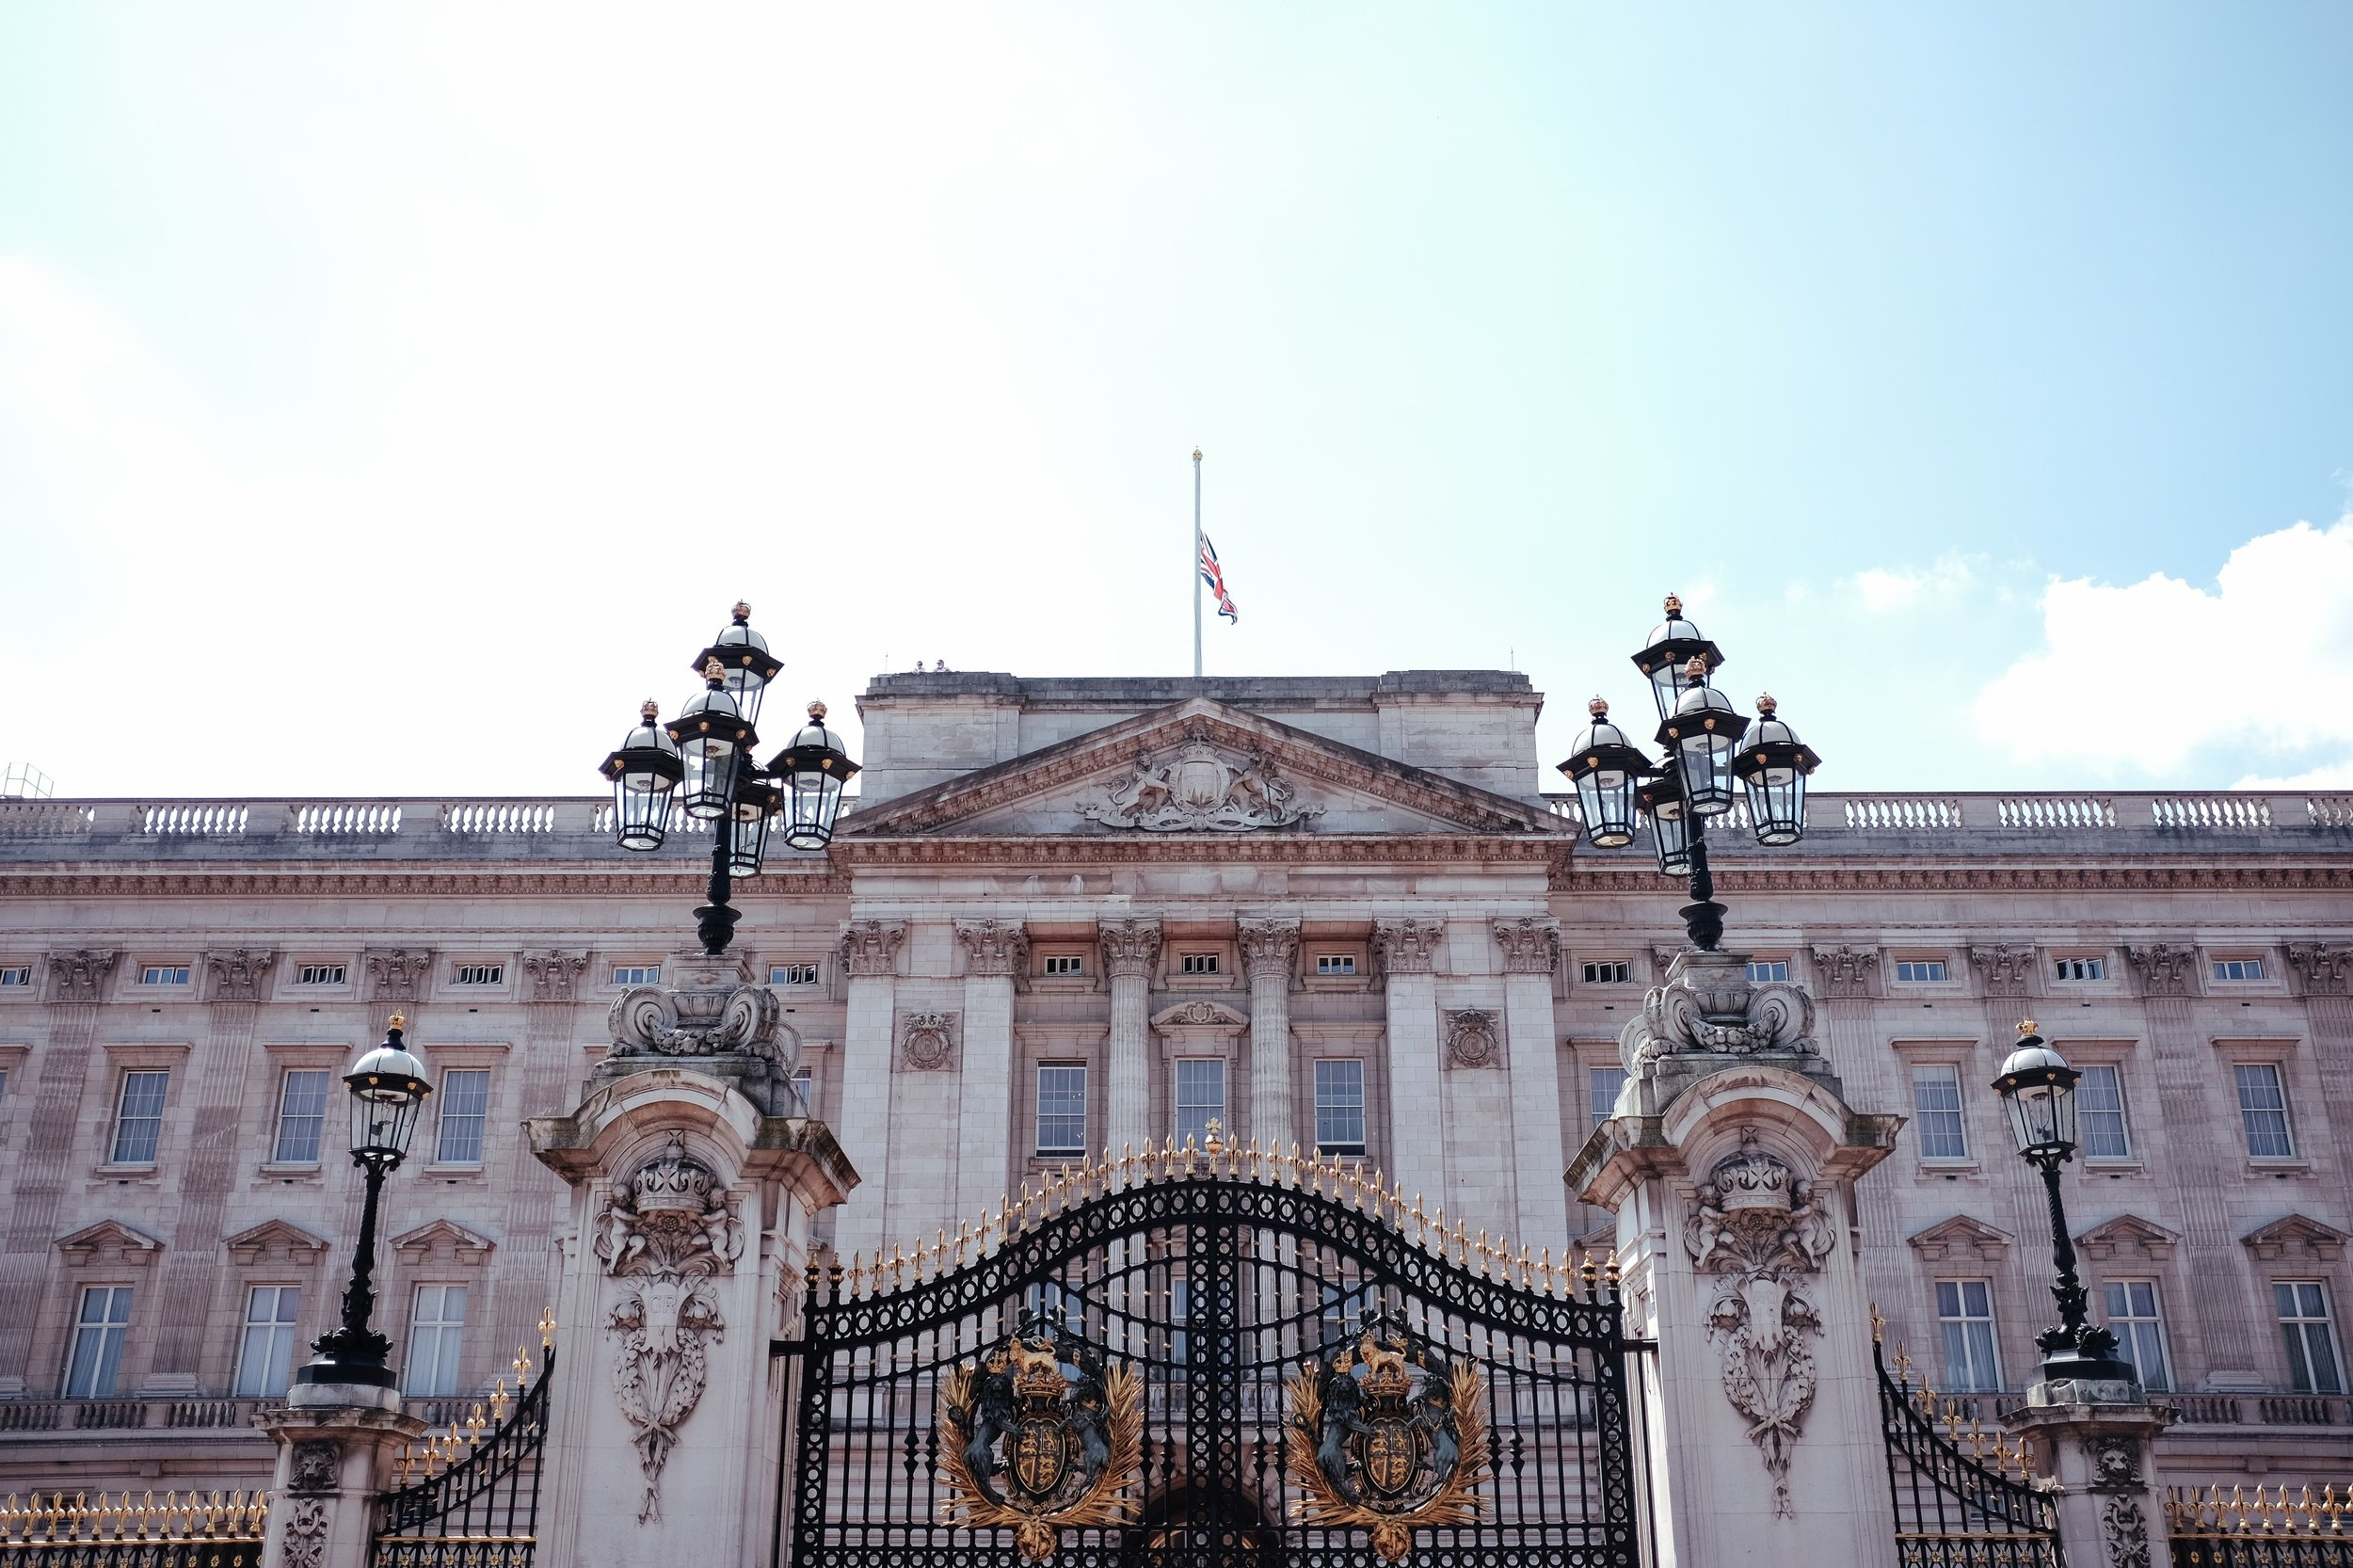 Day 16 London - London Eye > Big Ben> St James Park > Buckingham palac